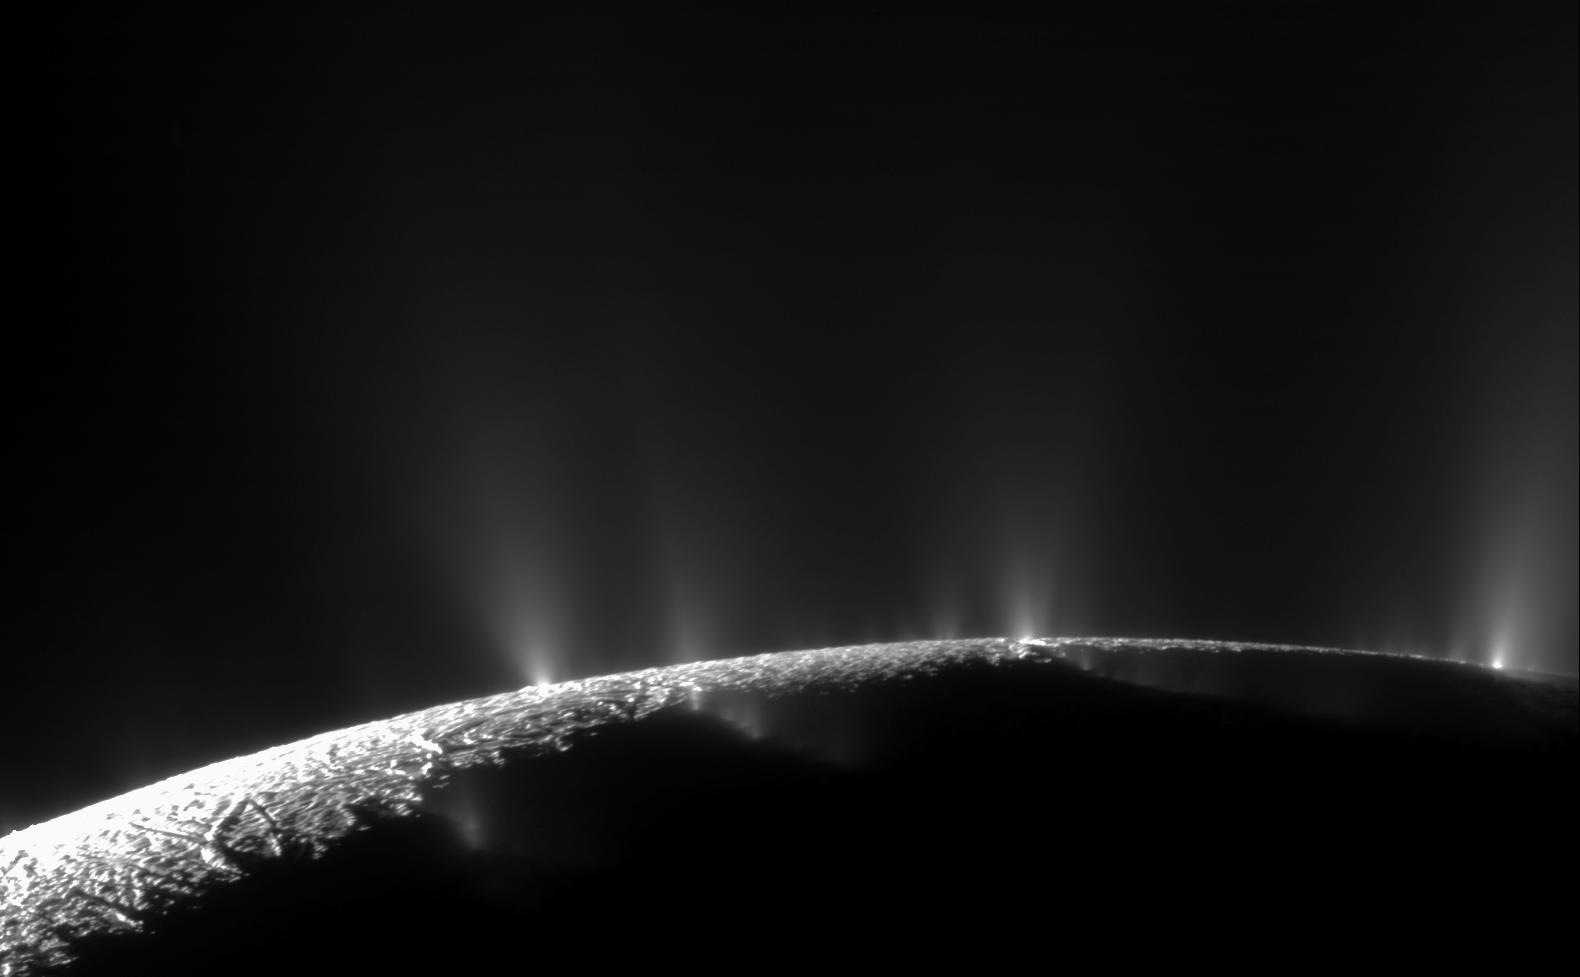 Enceladus plumes in a black and white image